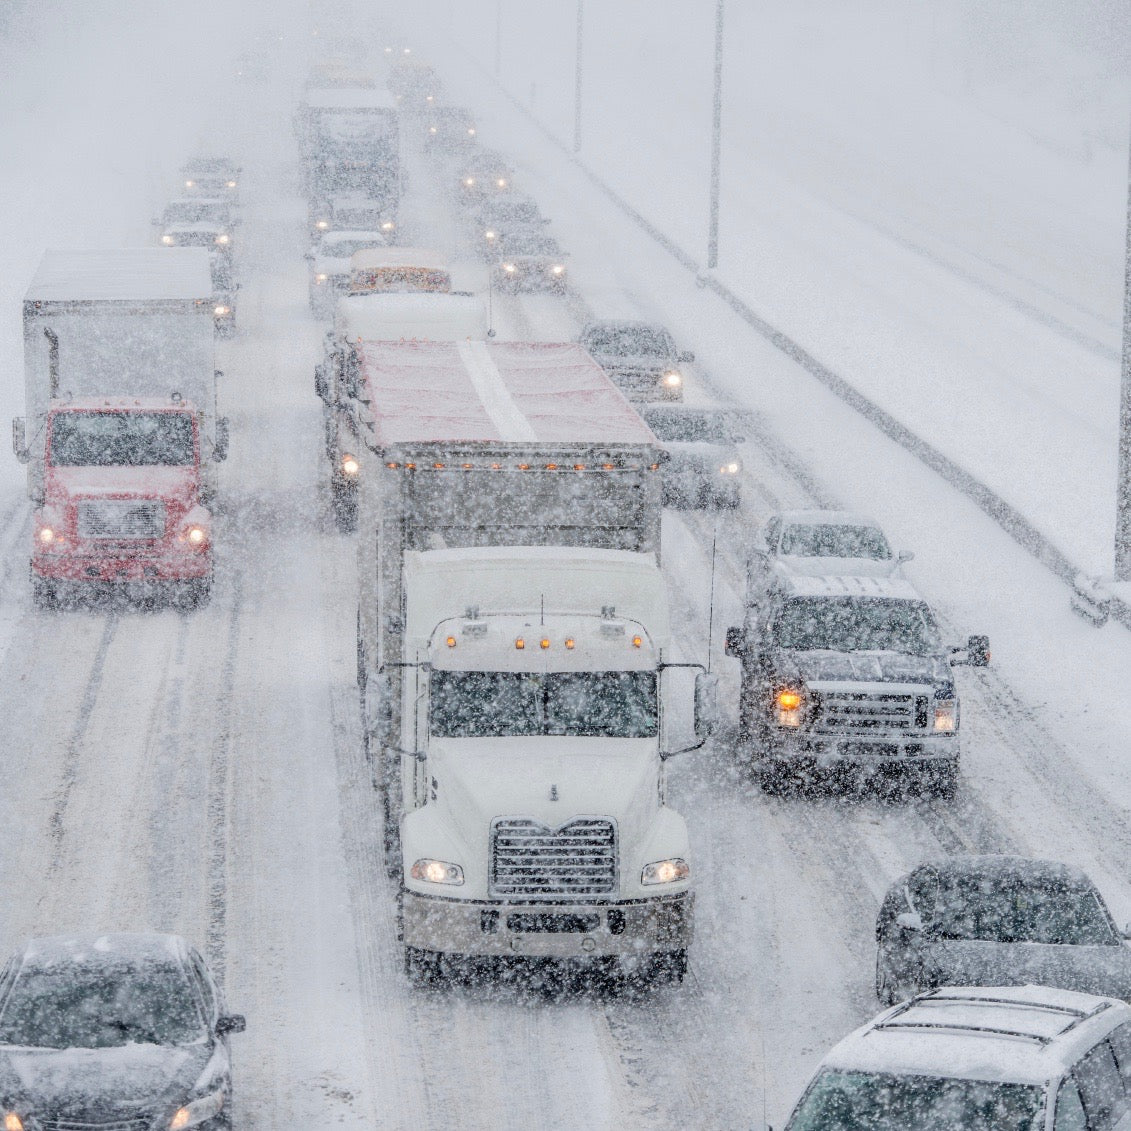 best winter every day wiper blades for commuter safety tips. How to get ice off windshield wiper fast quick while driving in storm will make your commute safer